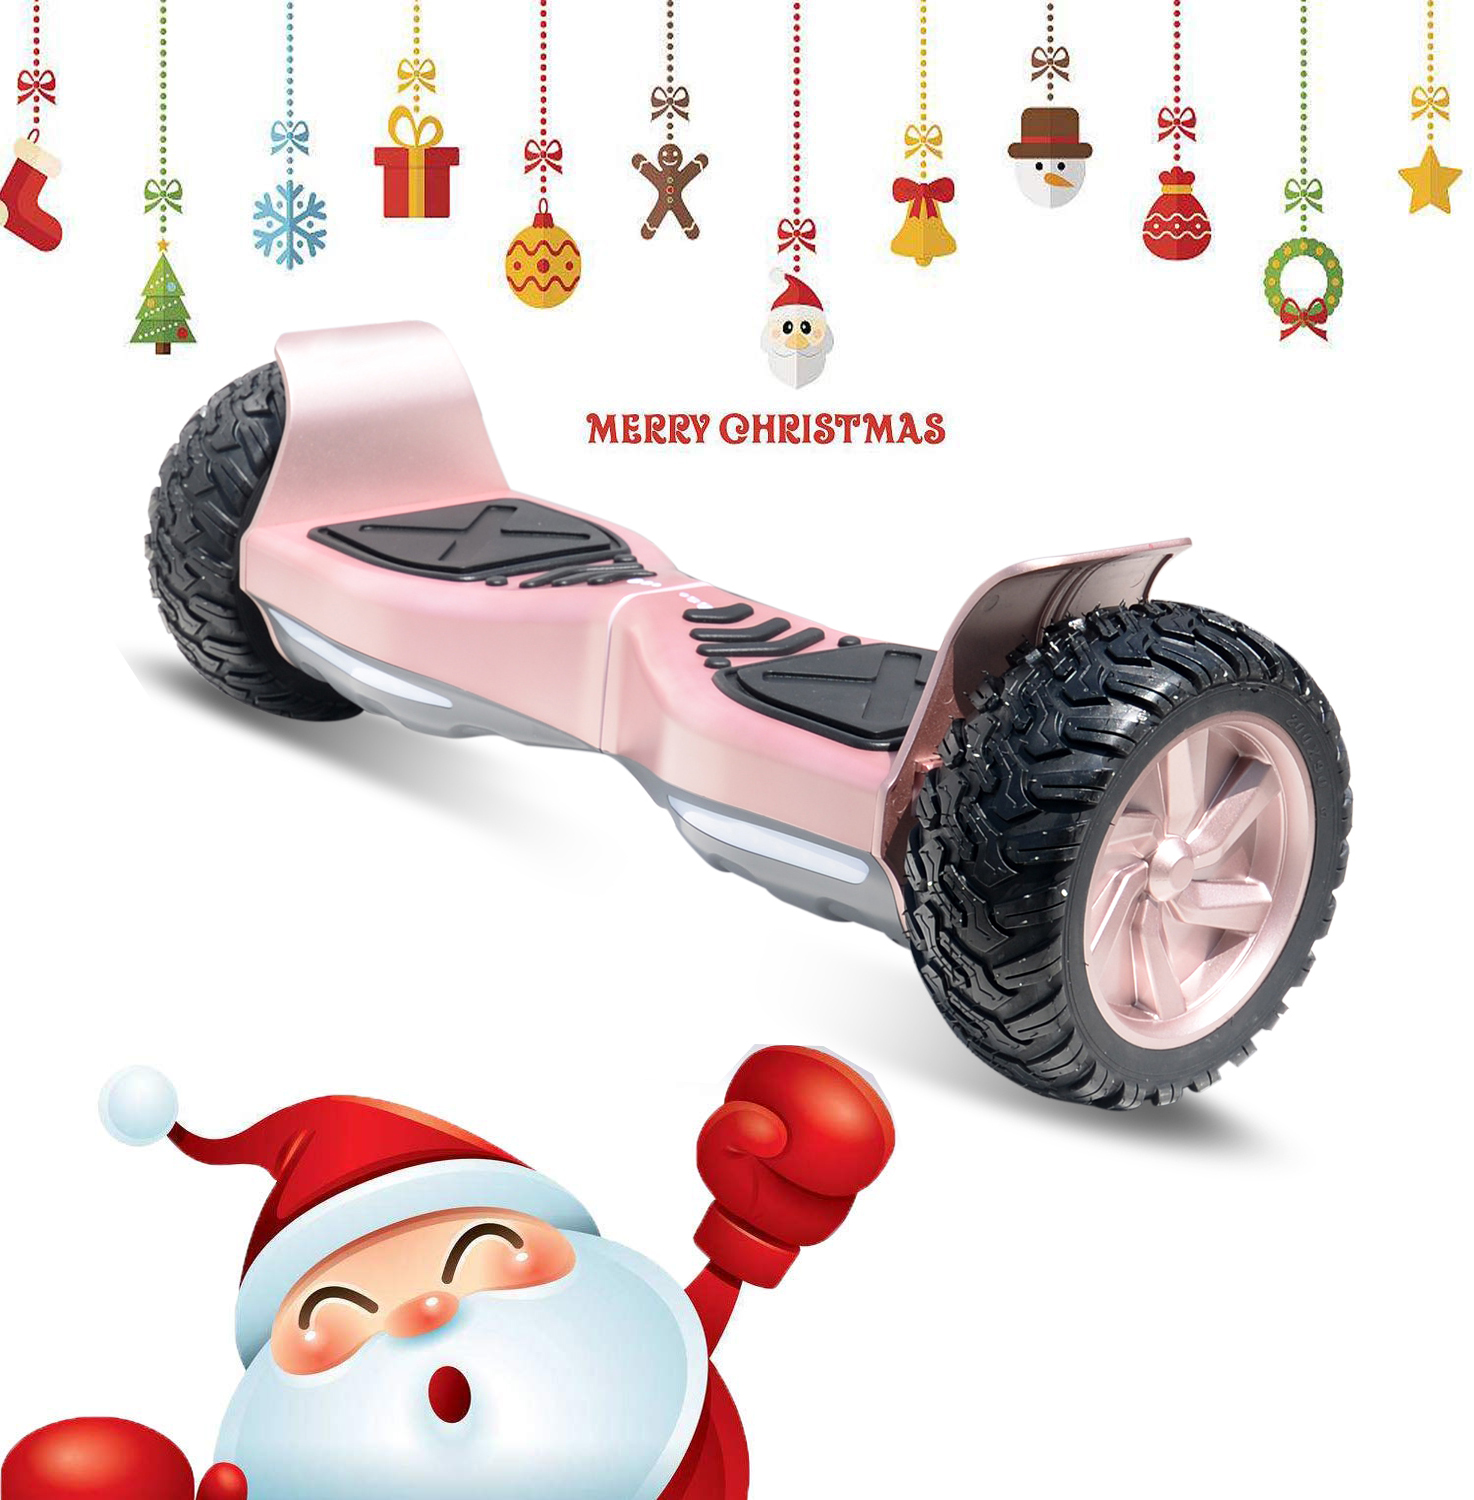 """Top Hoverboards for Gift Choices - 5 Best 8.5""""Hoverboards"""